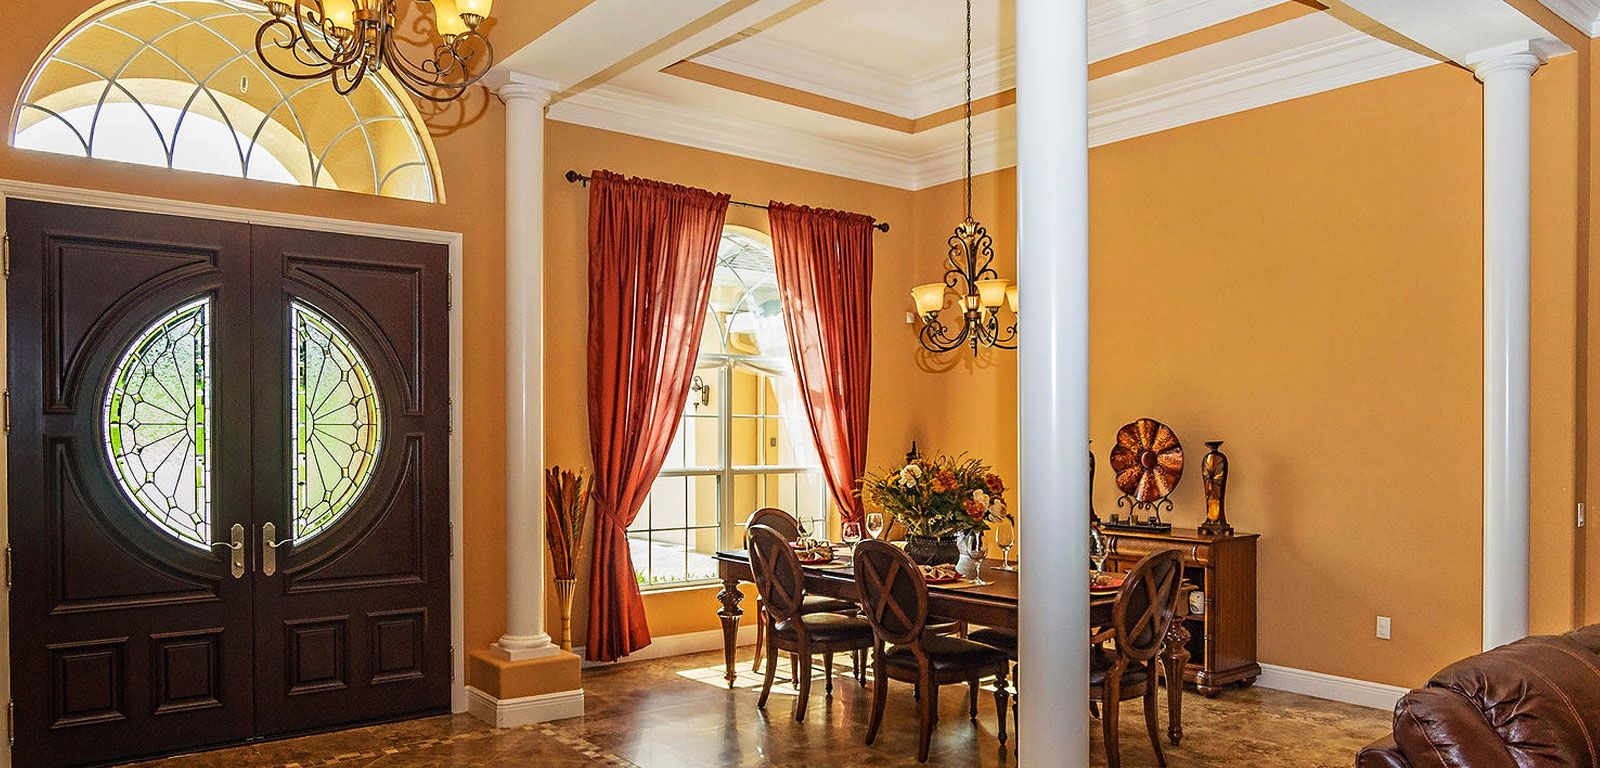 Dining room with big window and orange wall